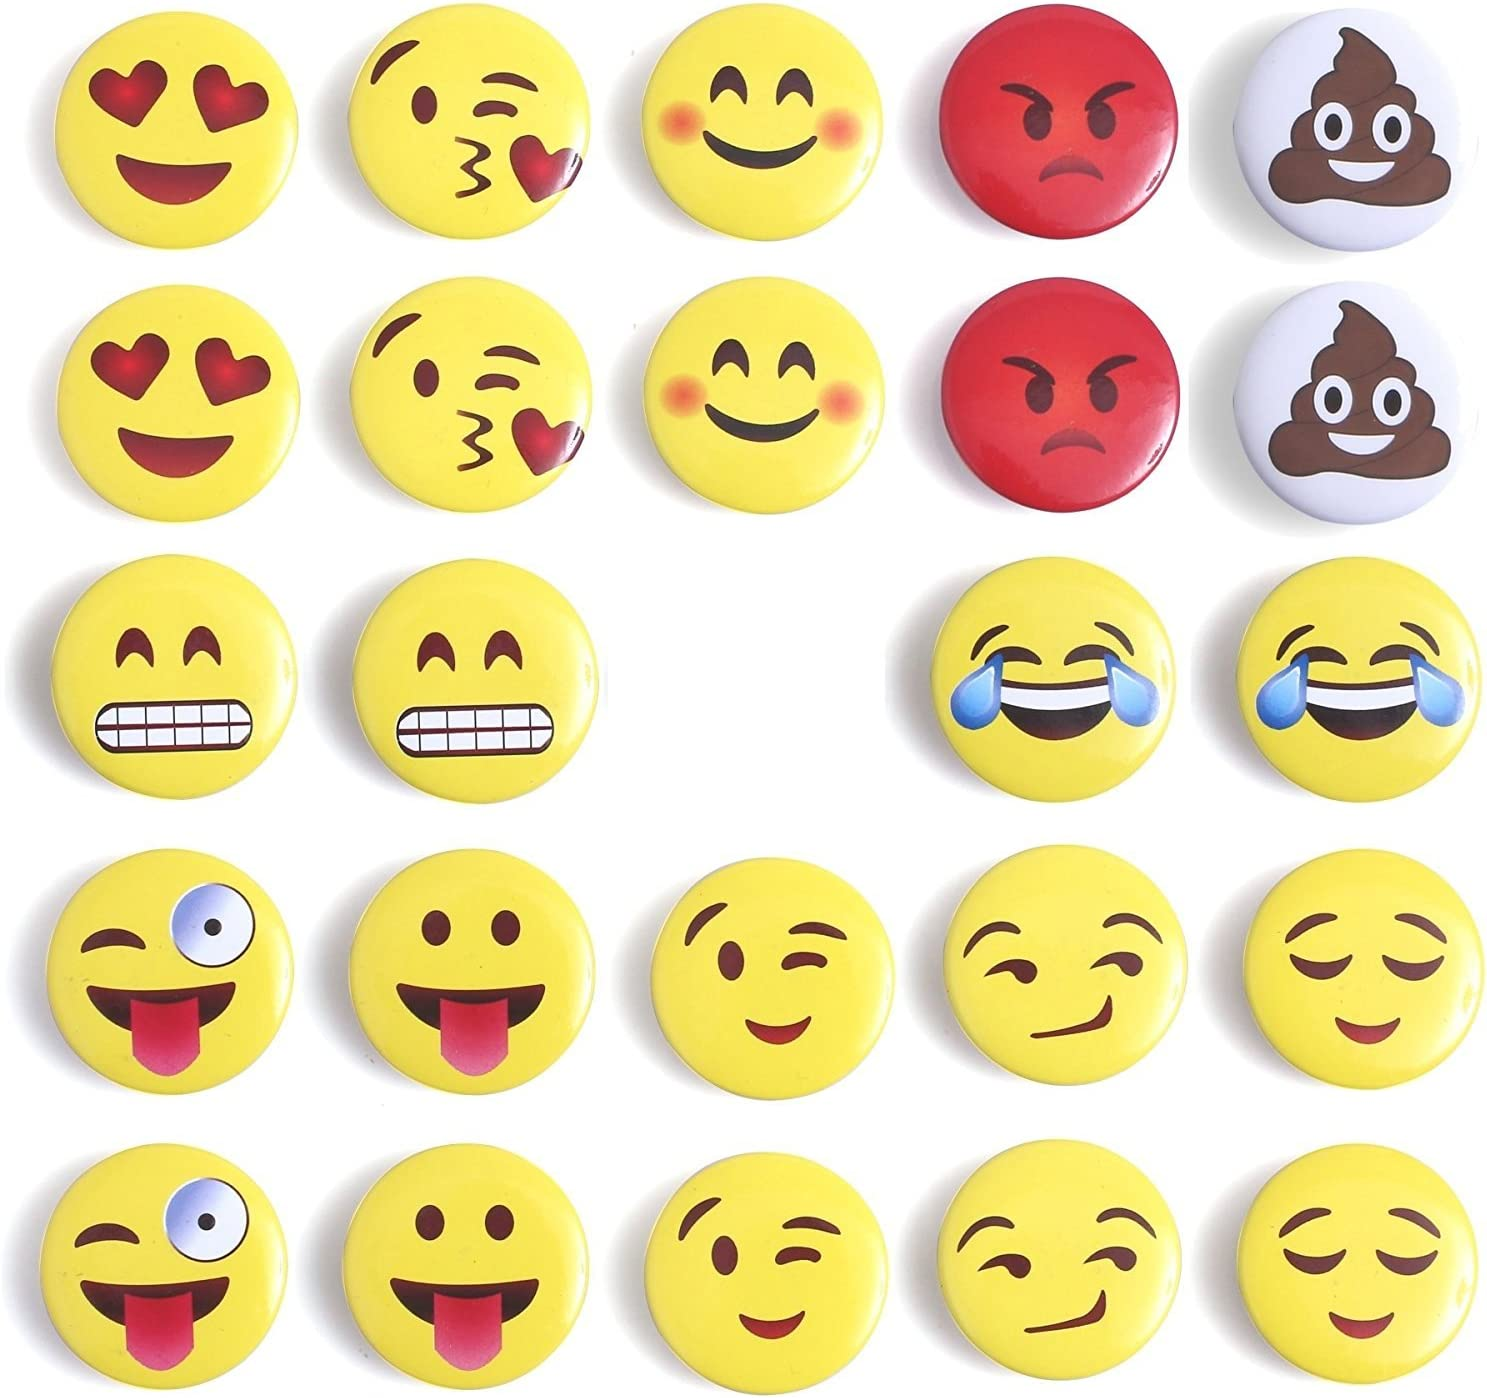 Mymazn Emoji Magnets Whiteboard Magnets, Fridge Magnets Refrigerator Magnets Office for Dry Erase Board Magnetic Smiley Face Magnets (Emoji 24)